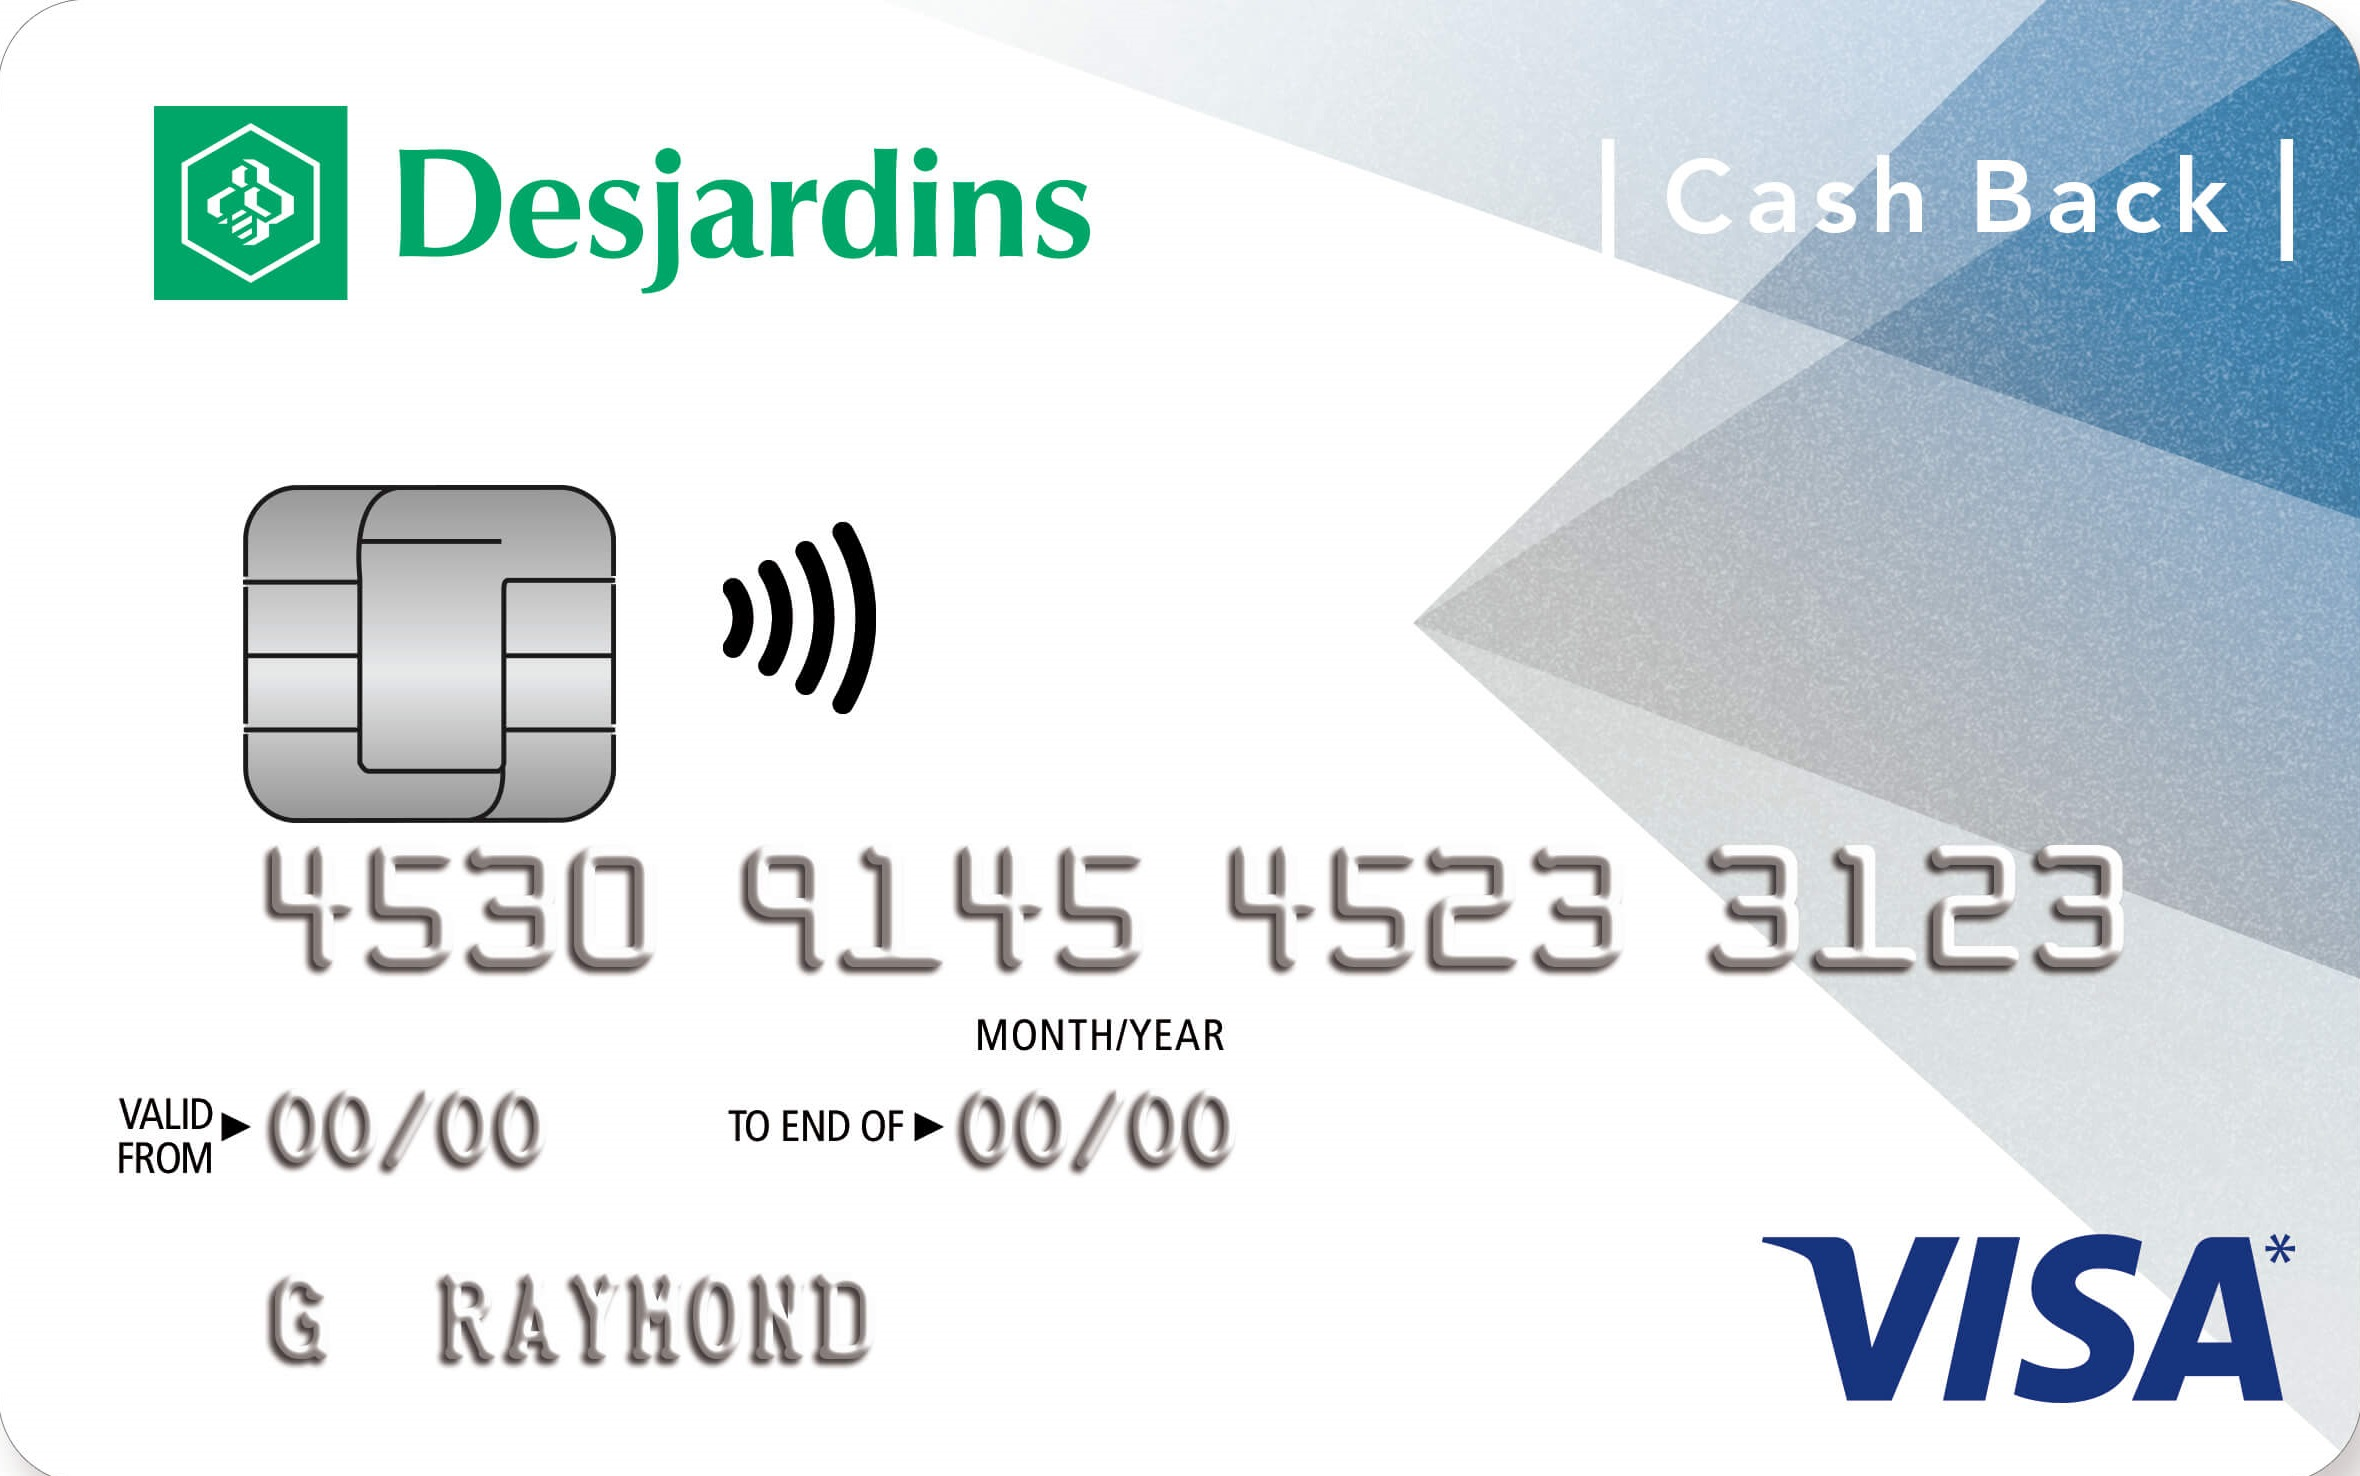 Desjardins Cash Back reviews, opinions and consumer feedback